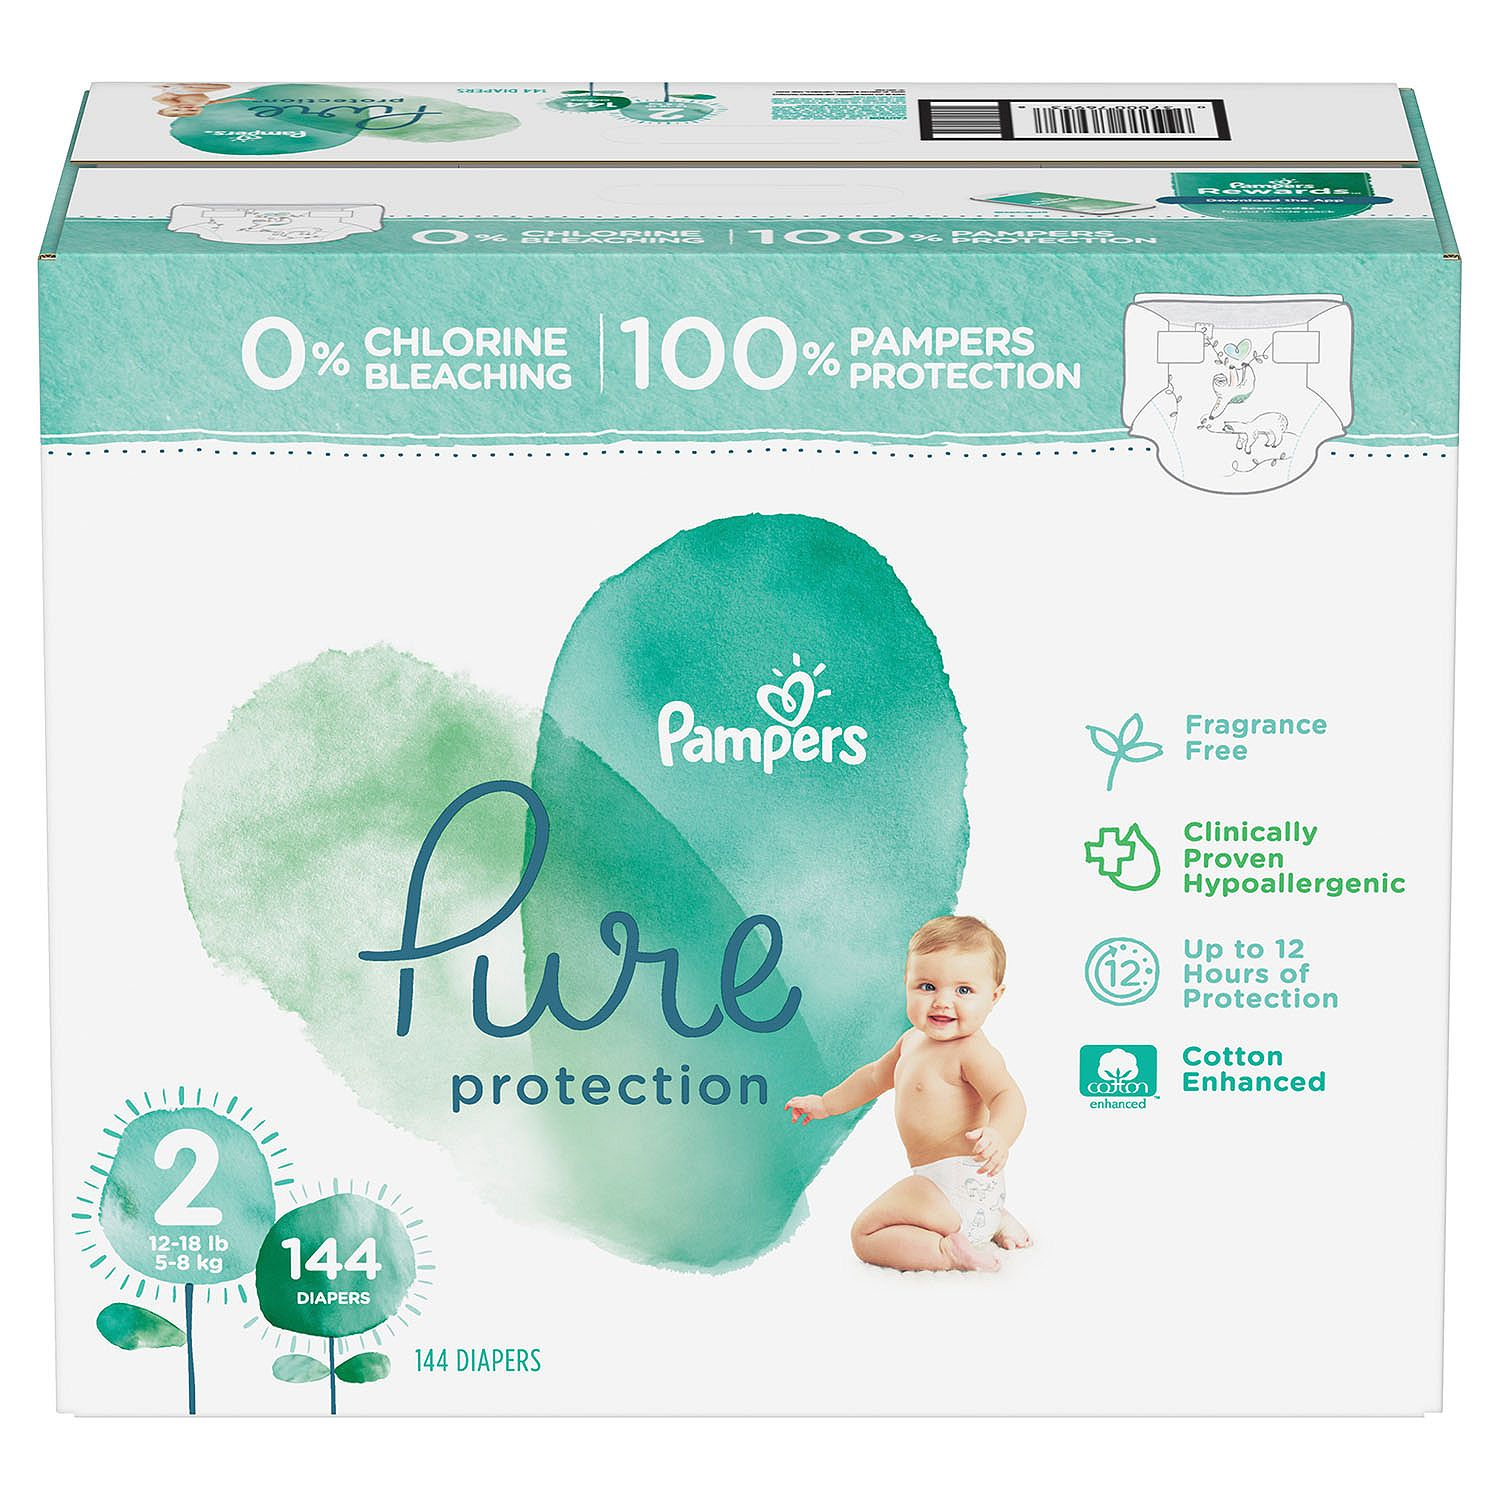 [100% Clinically proven hypoallergenic] 'Pampers' Pure Protection Diapers, Premium cotton, Soft, Size 2, Count 144 ct [Free of chlorine bleach, fragrance, lotion, parabens, and EU 26 allergens]